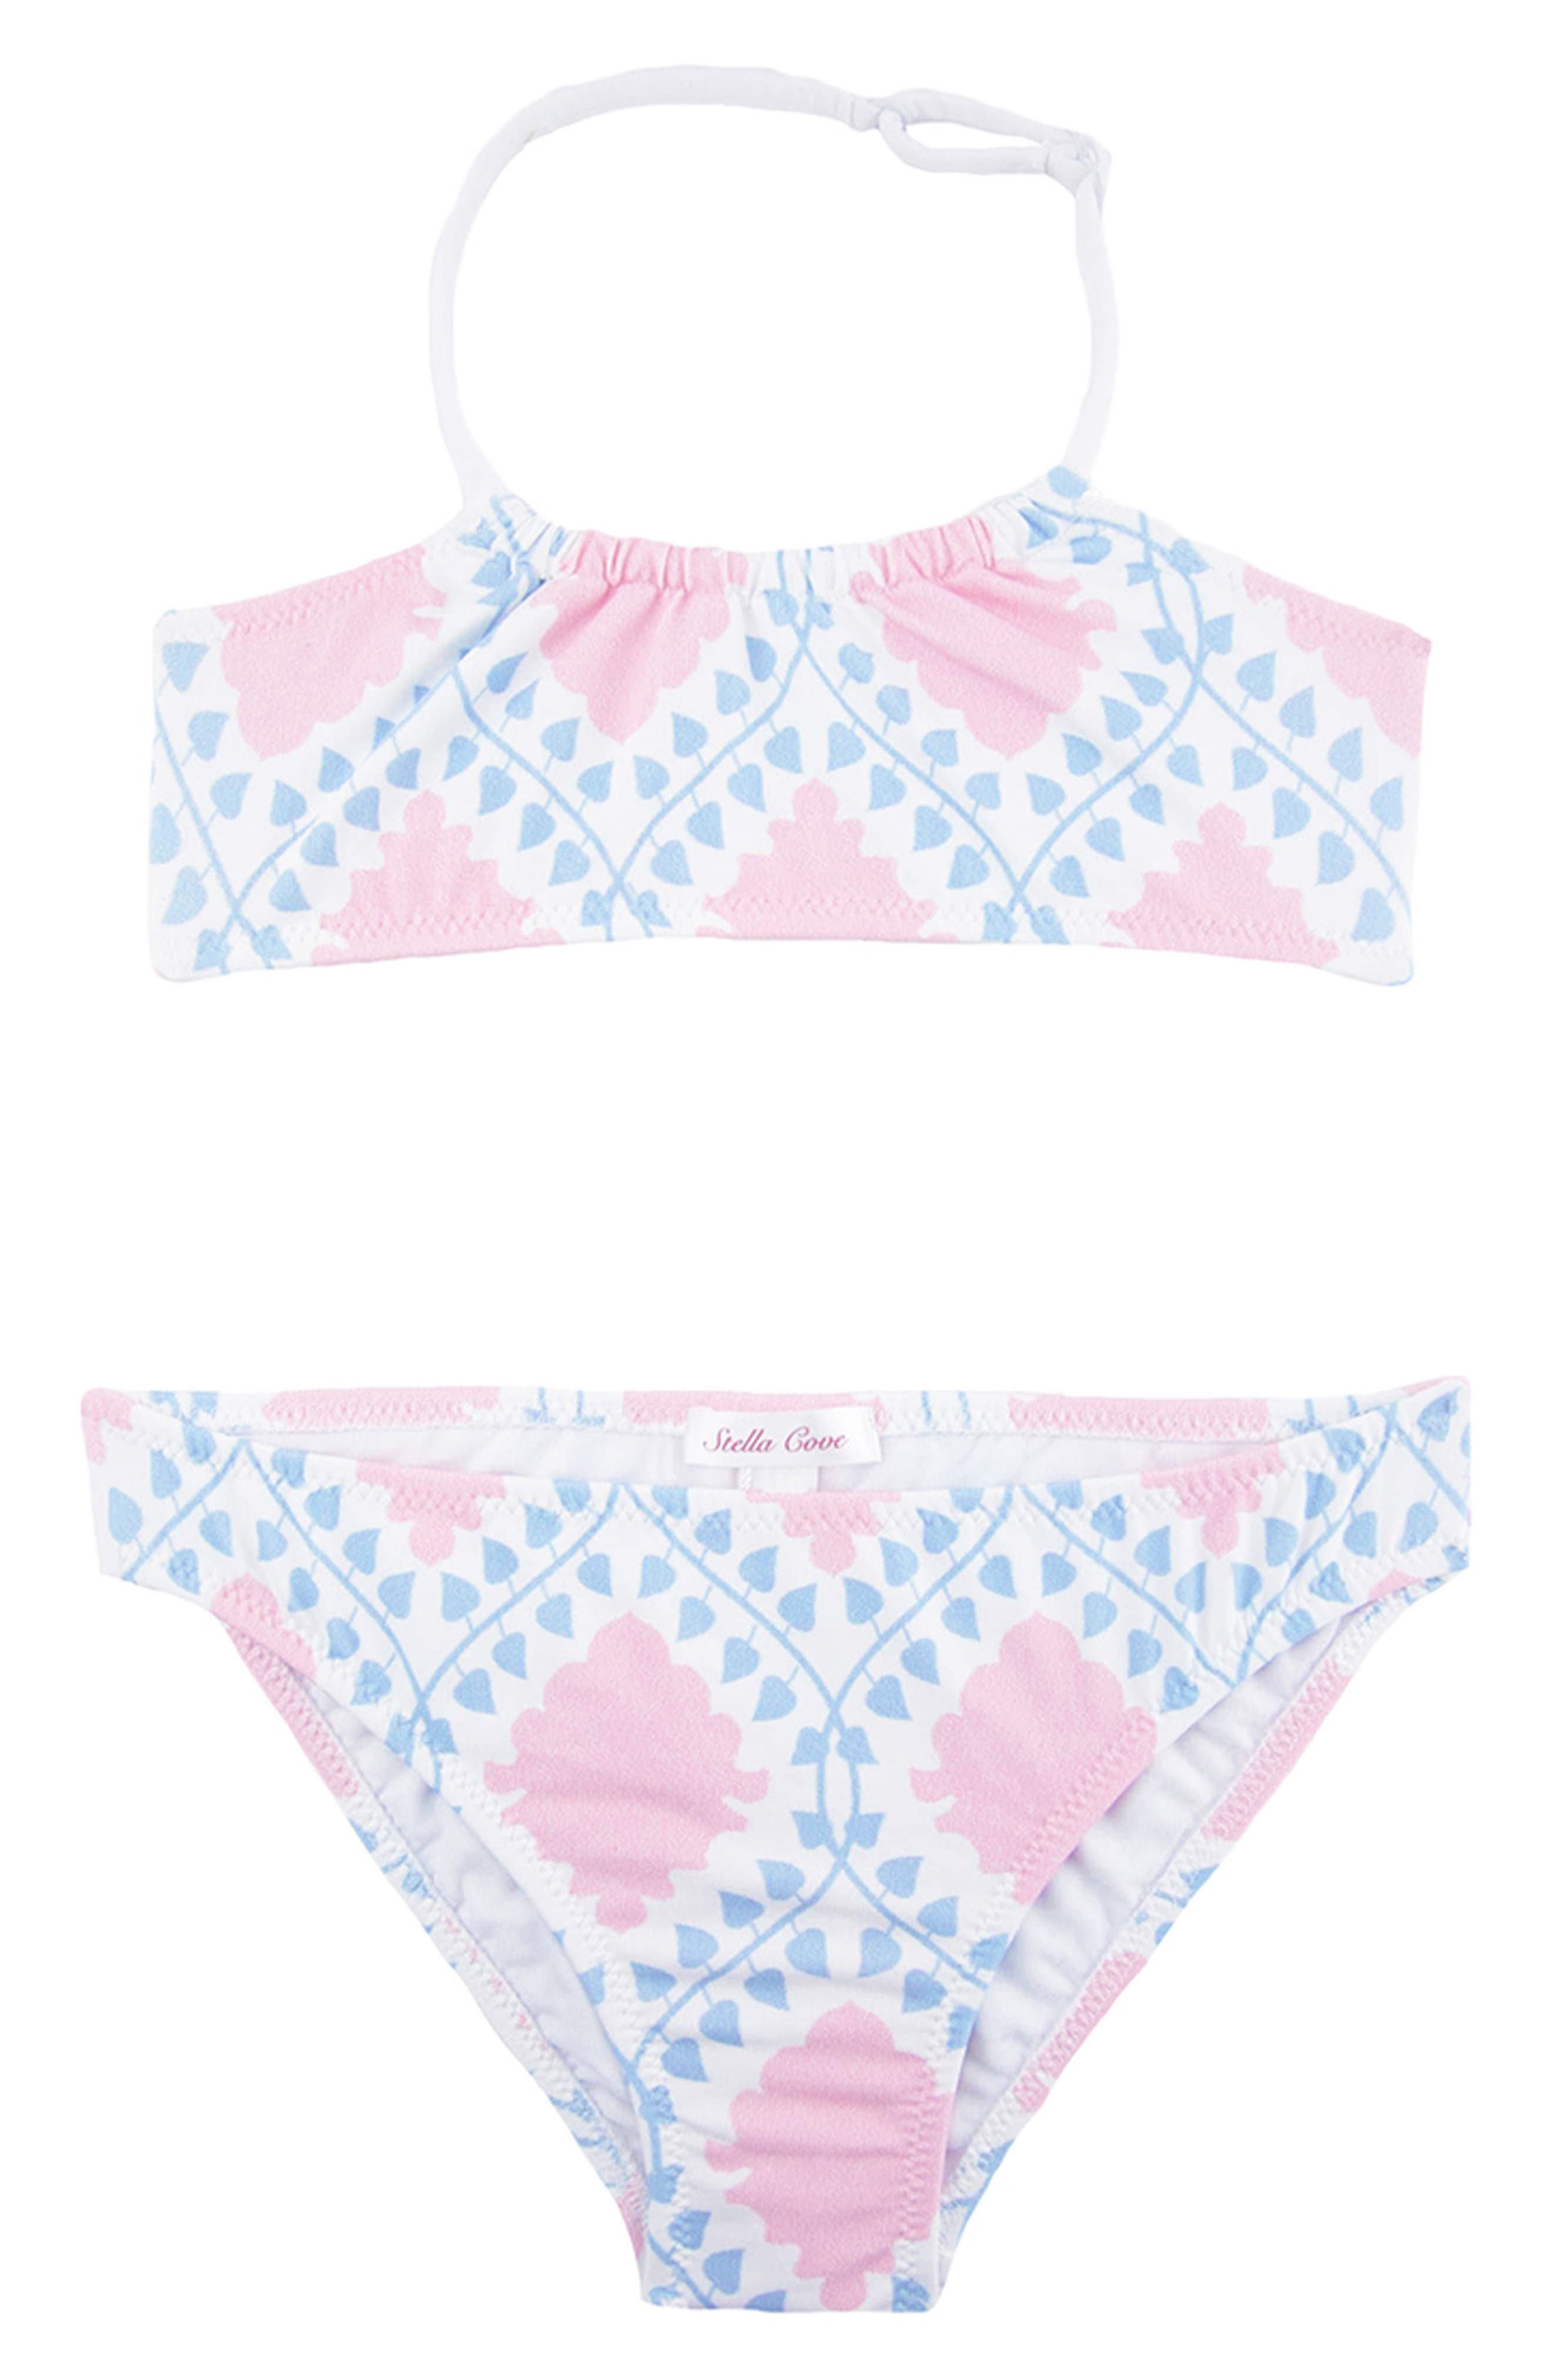 Alternate Image 1 Selected - Stella Cove Two-Piece Swimsuit (Toddler Girls & Little Girls)